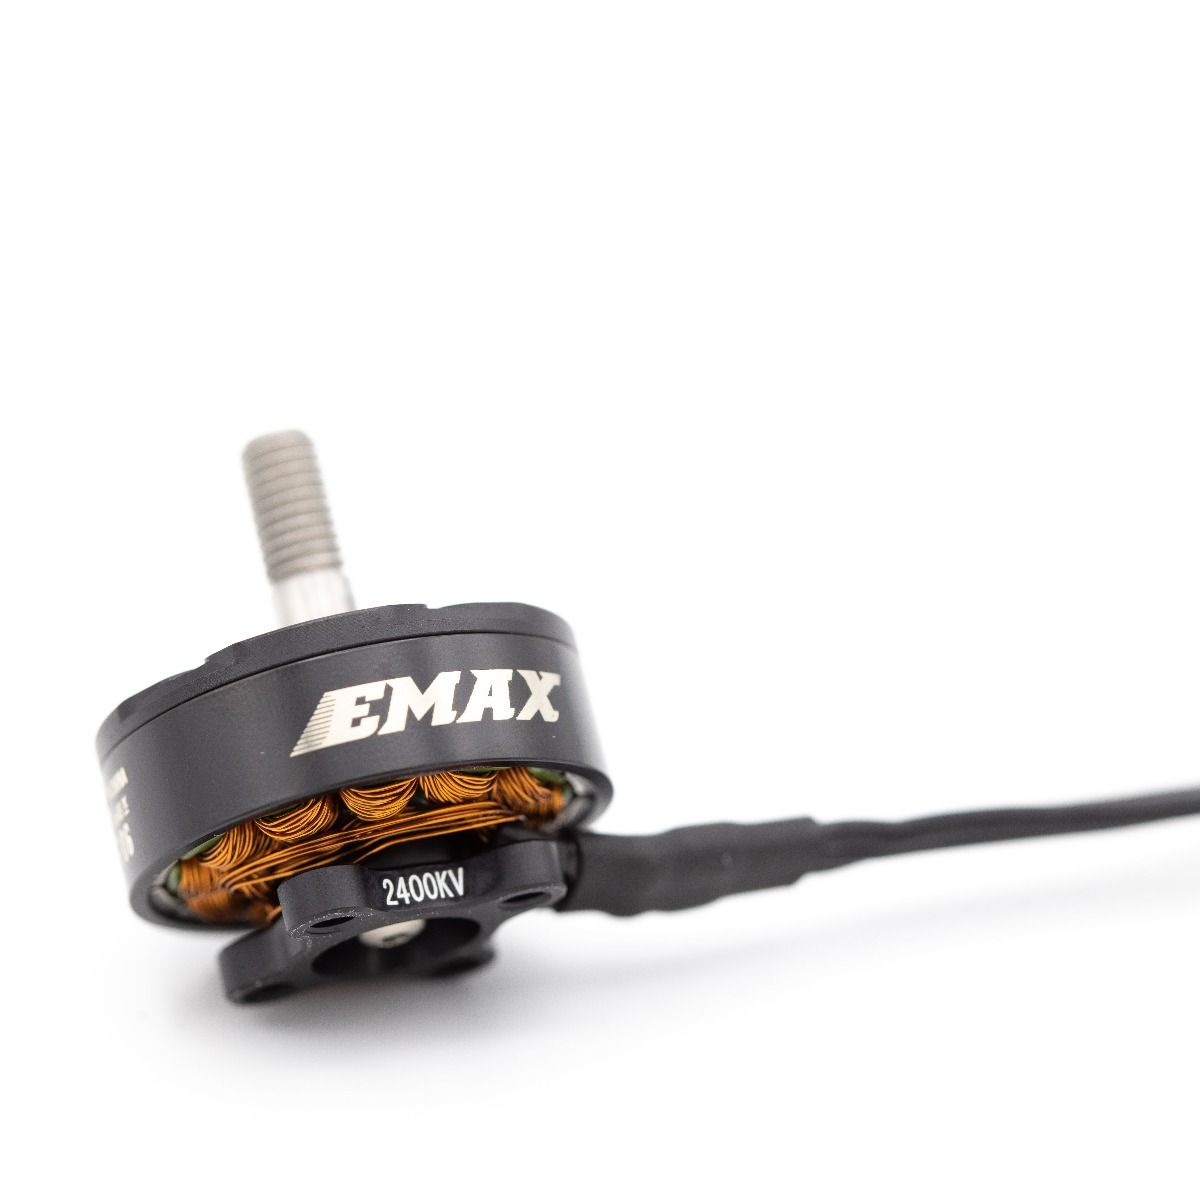 Emax FreestyleSpec FS 2306 Brushless Motor